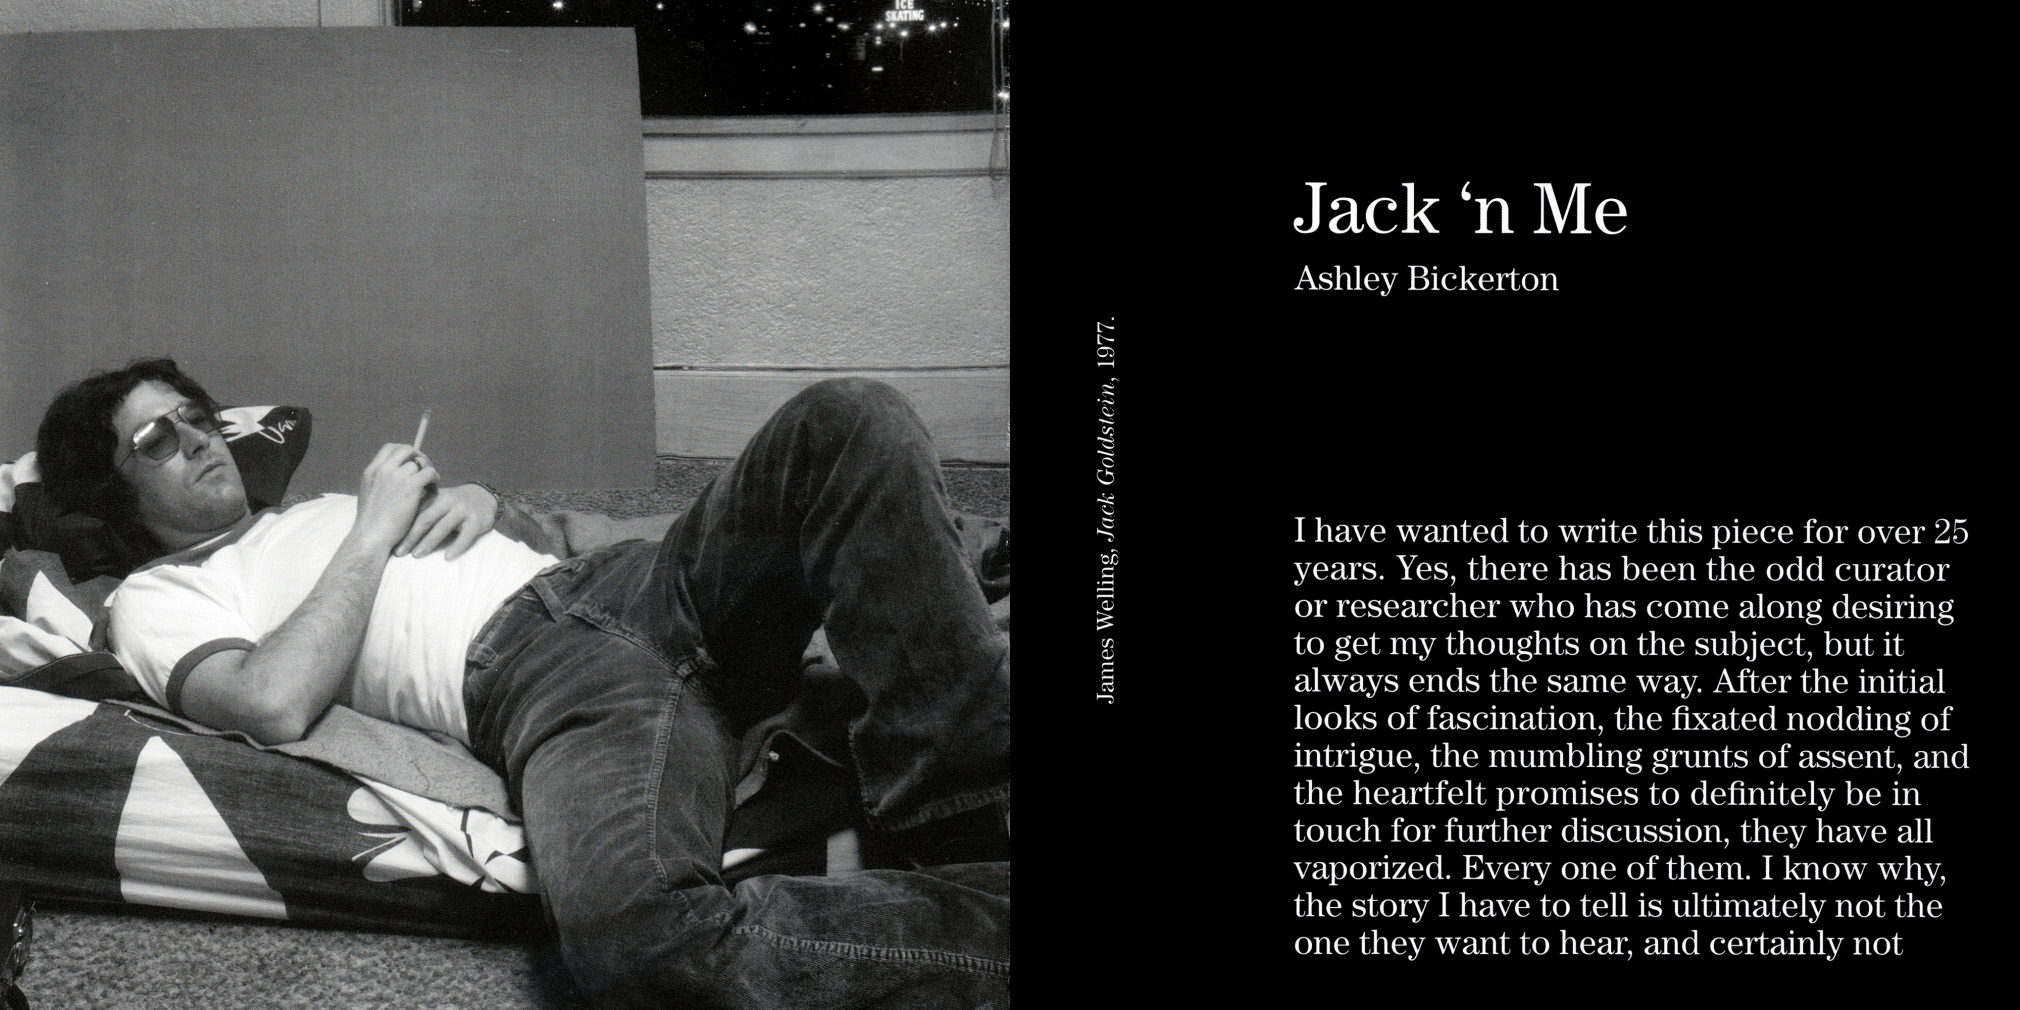 Interior view of Where is Jack Goldstein?, published by Venus Over Manhattan, New York, 2012